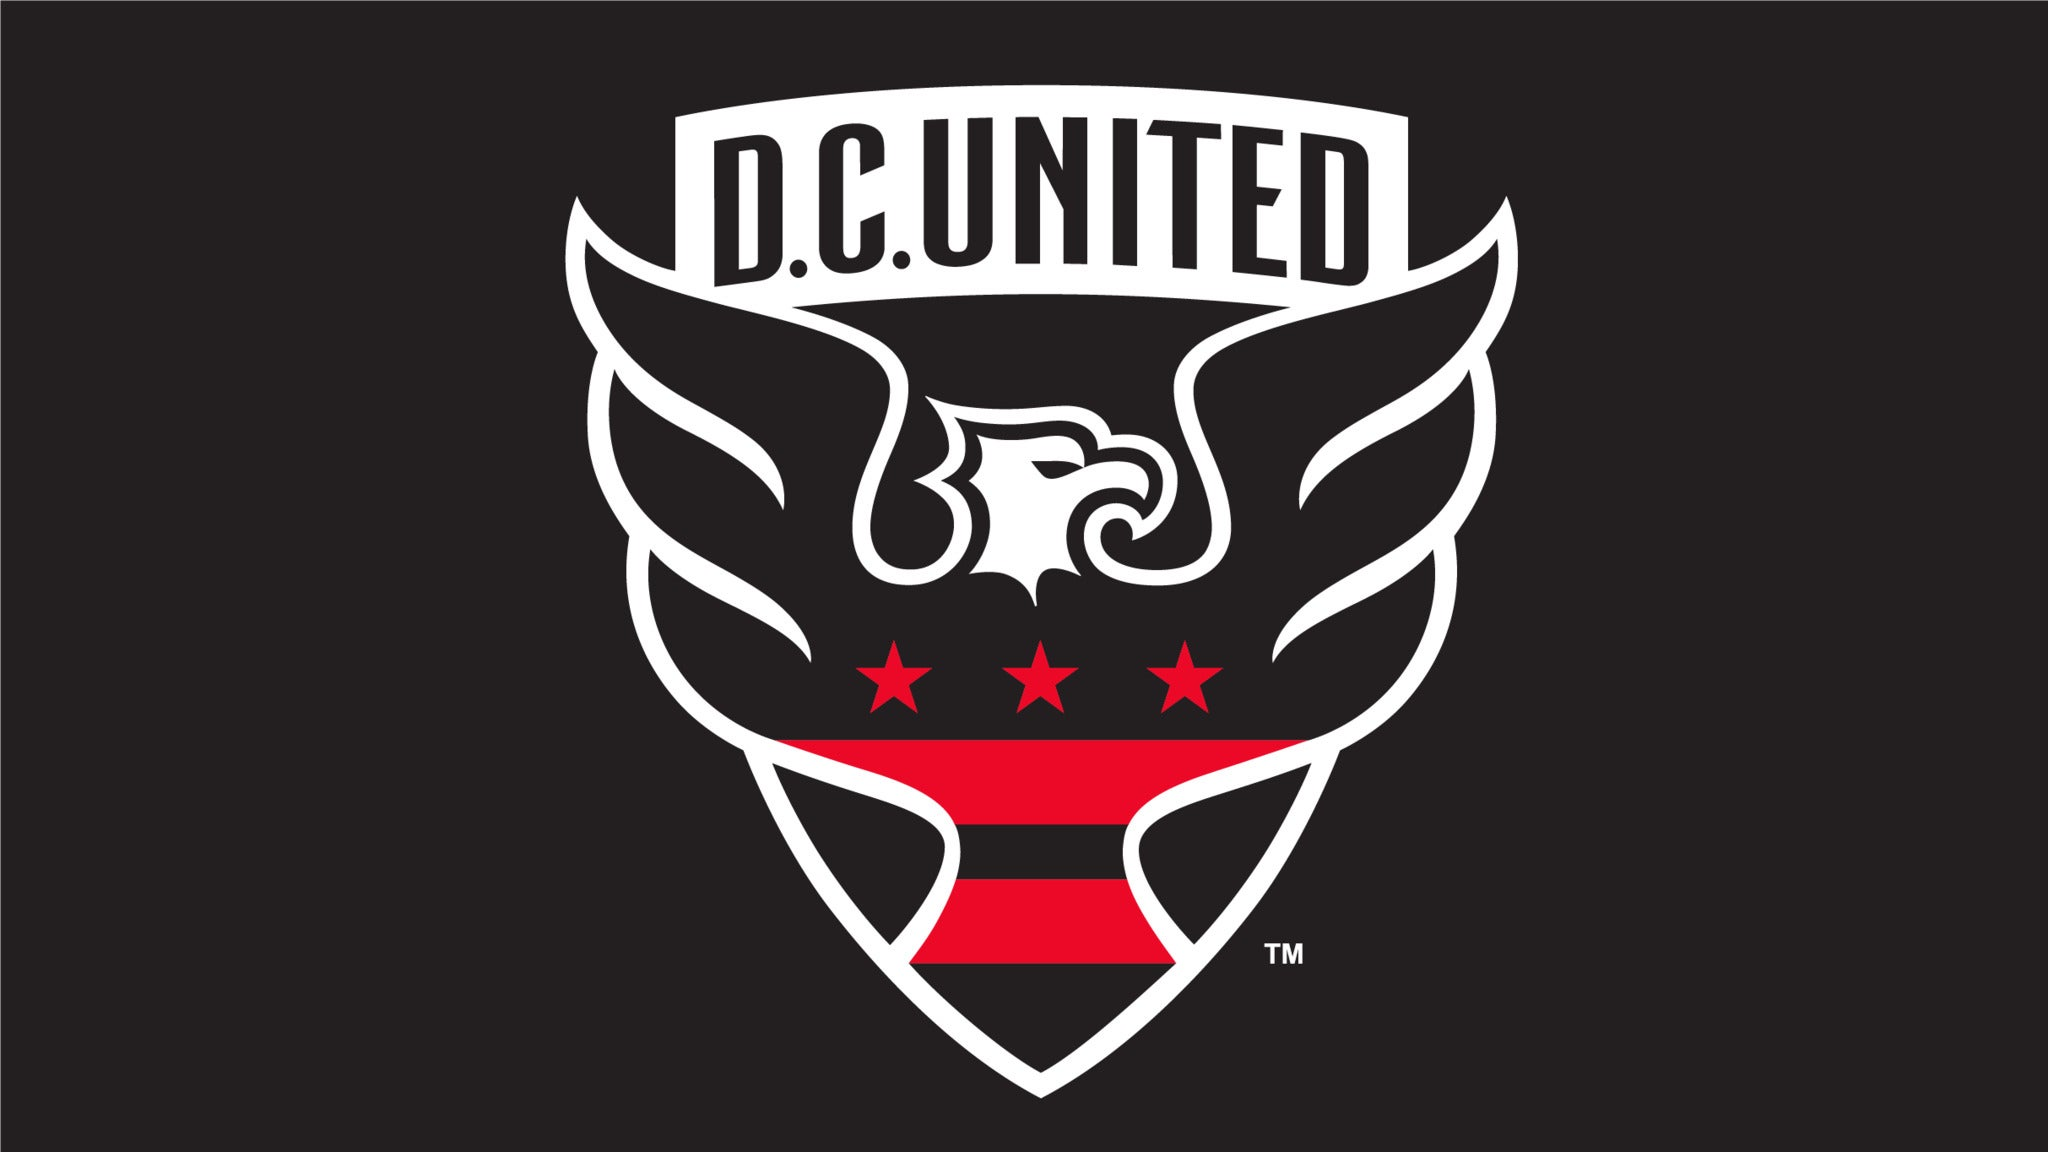 D.C. United vs. San Jose Earthquakes at RFK Stadium